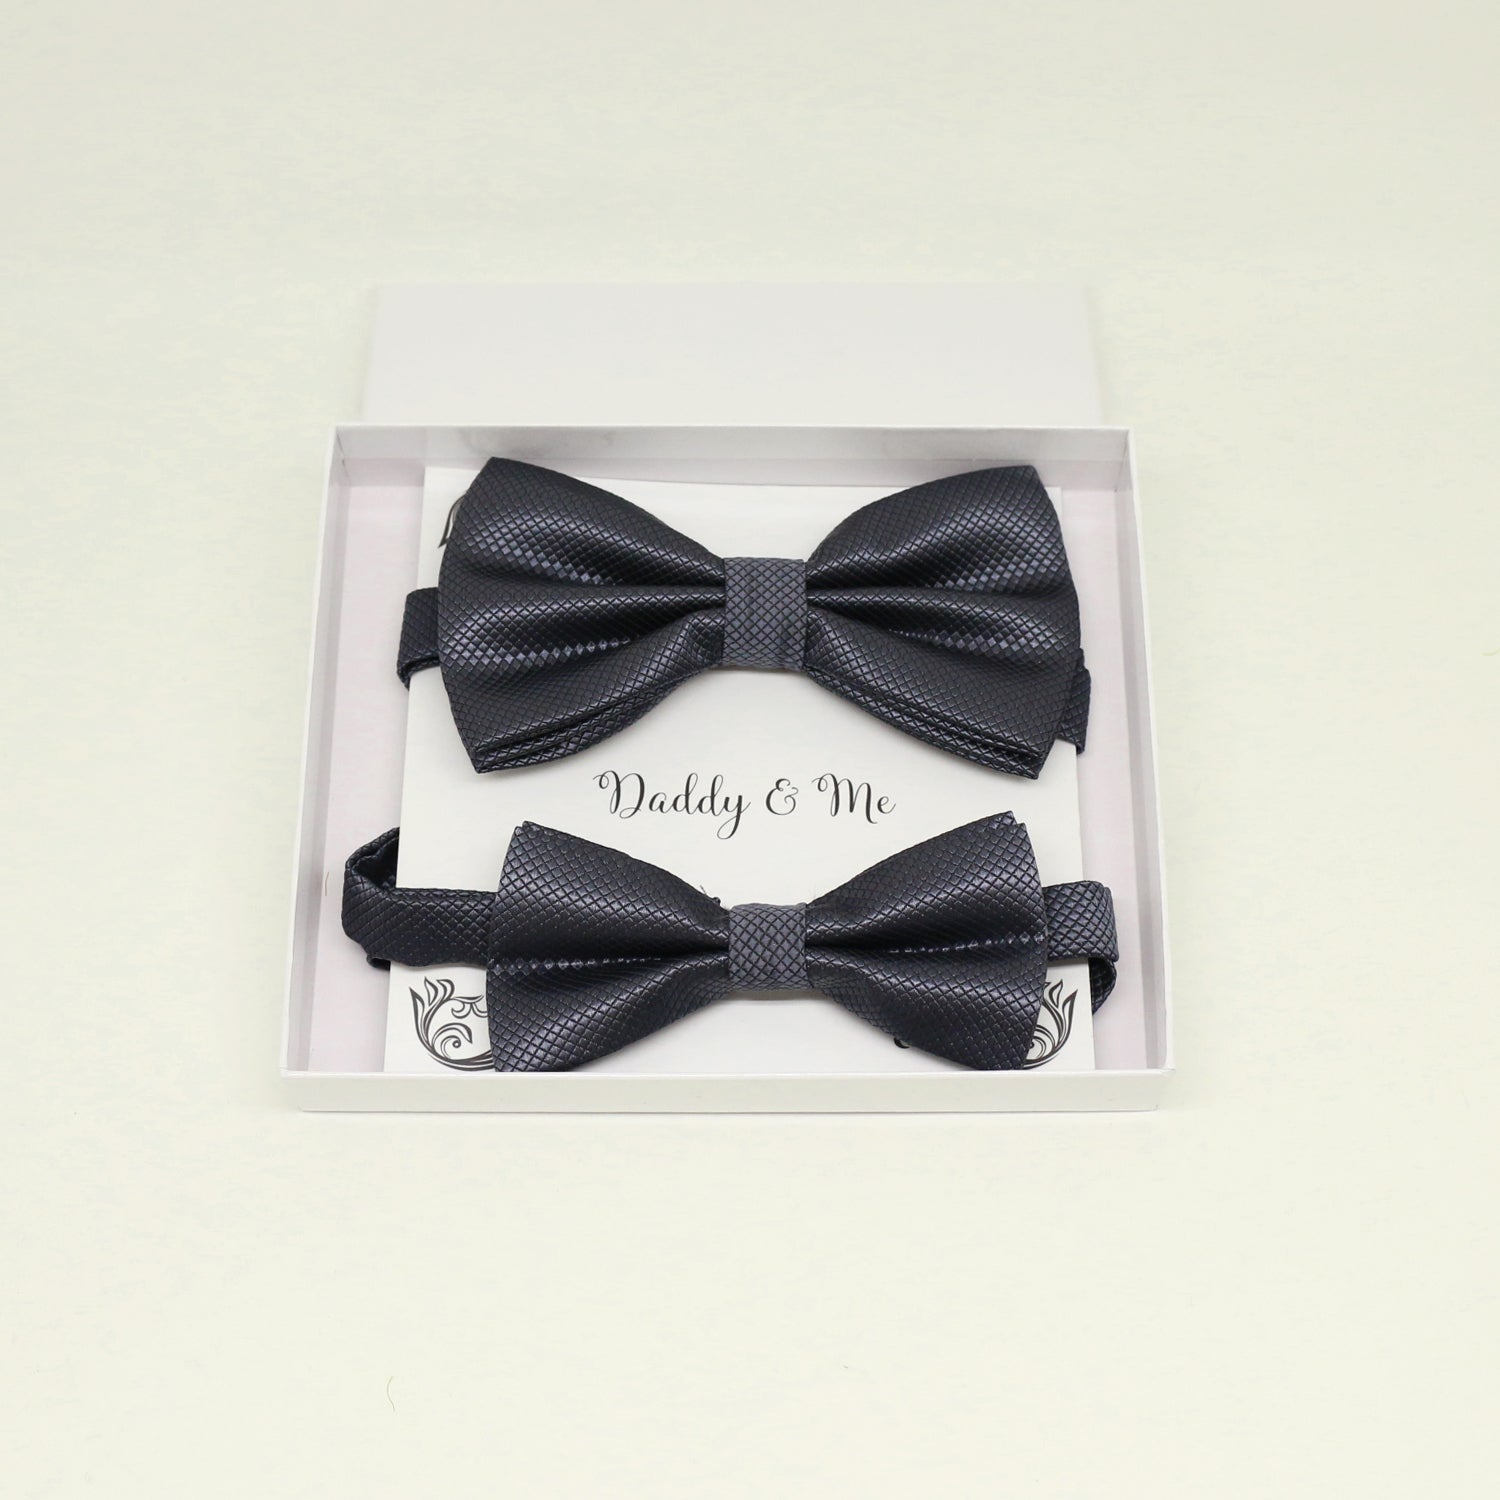 Charcoal Bow tie set for daddy and son, Daddy me gift set, Grandpa and me, Father son match, charcoal Toddler Kids bow, daddy me bow tie